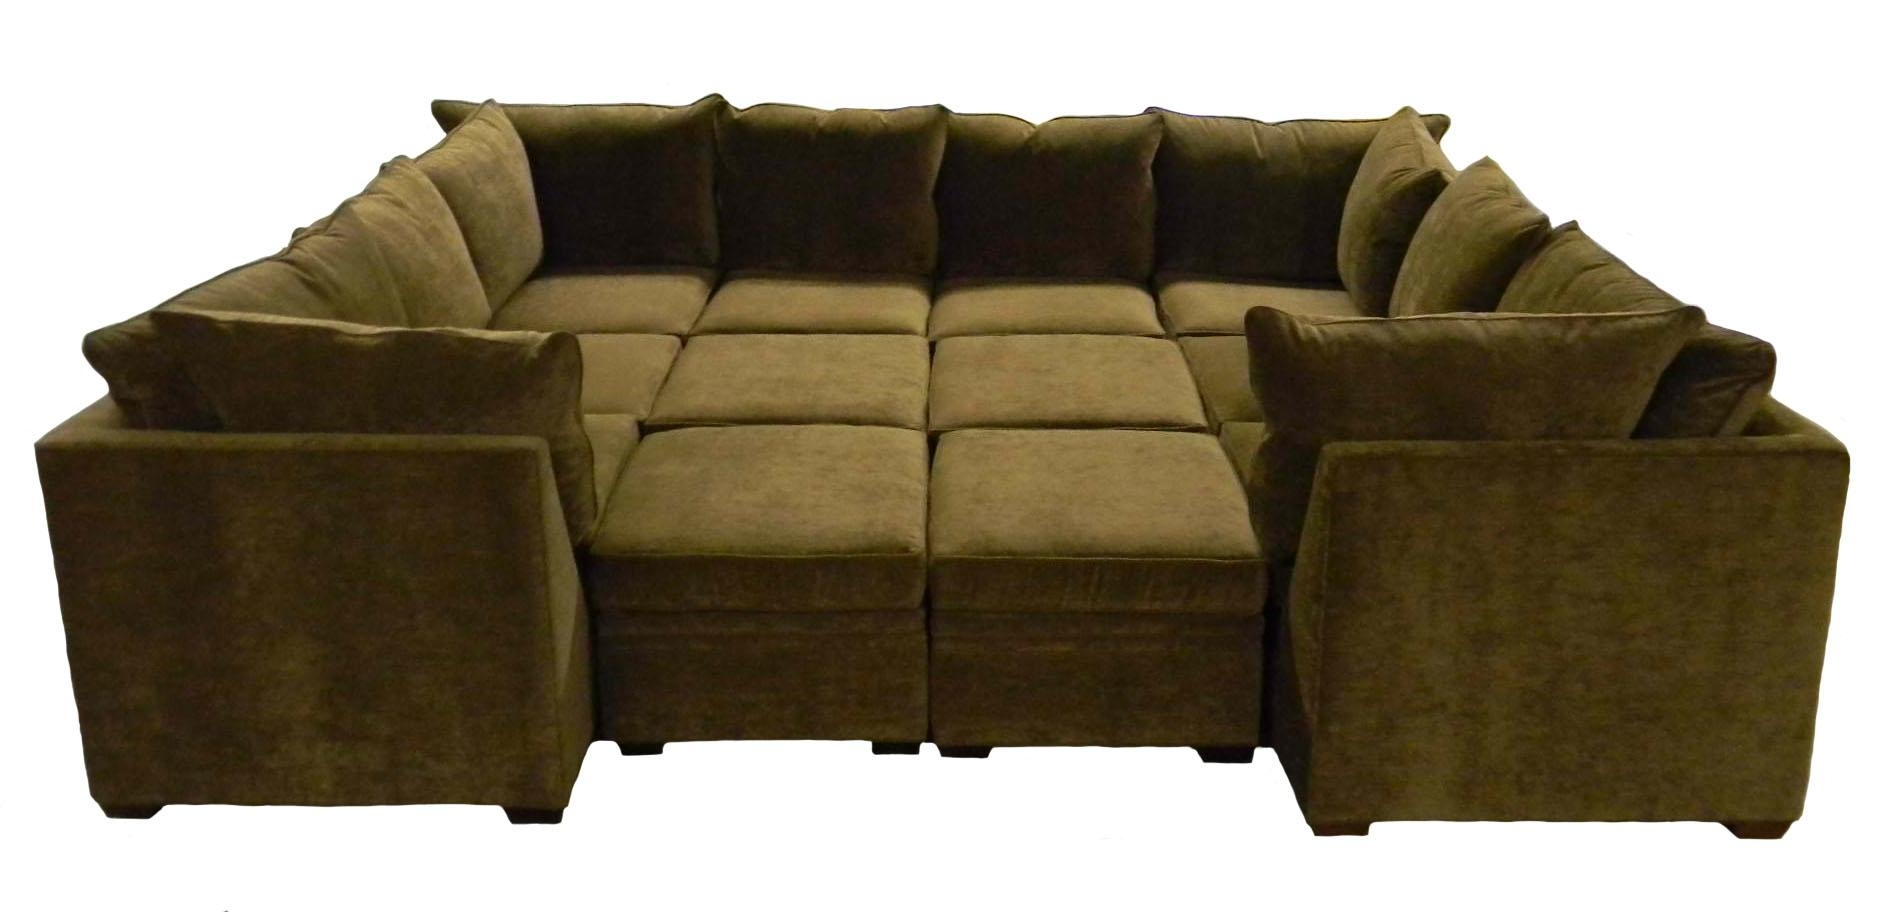 Media Room Sectional: Beautiful Pictures, Photos Of Remodeling In Media Room Sectional Sofas (Image 10 of 20)